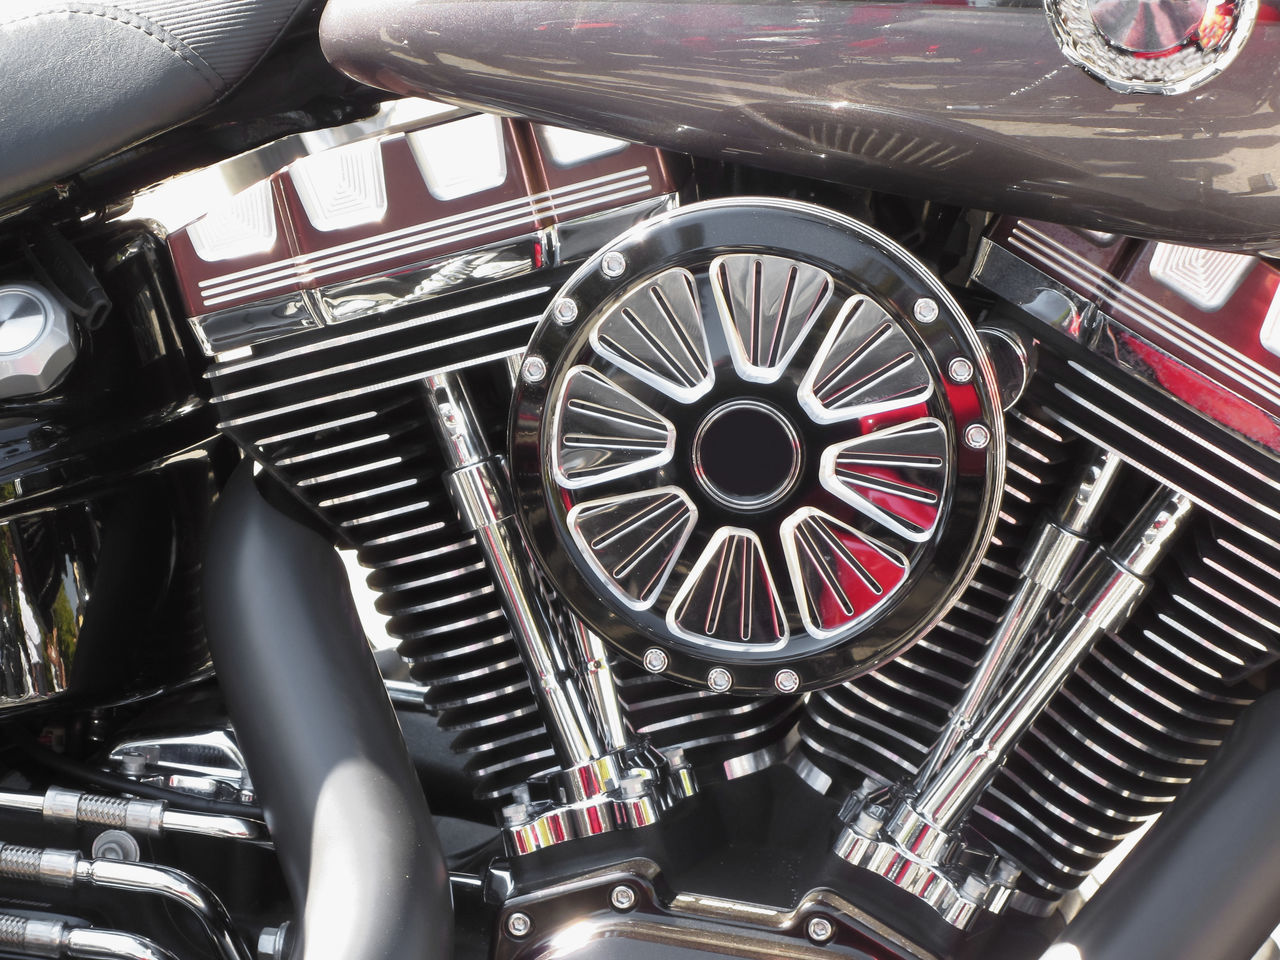 Motorcycle chromed engine closeup detail background Acceleration Bike Carburetor Chopper Chrome Combustion Crotch Cylinder Detail Engine Horsepower Mechanics Mechanism Motor Motorbike Motorcycle Polished Power Radiator Reflection Shine Steel TORQUE Transport Vehicle